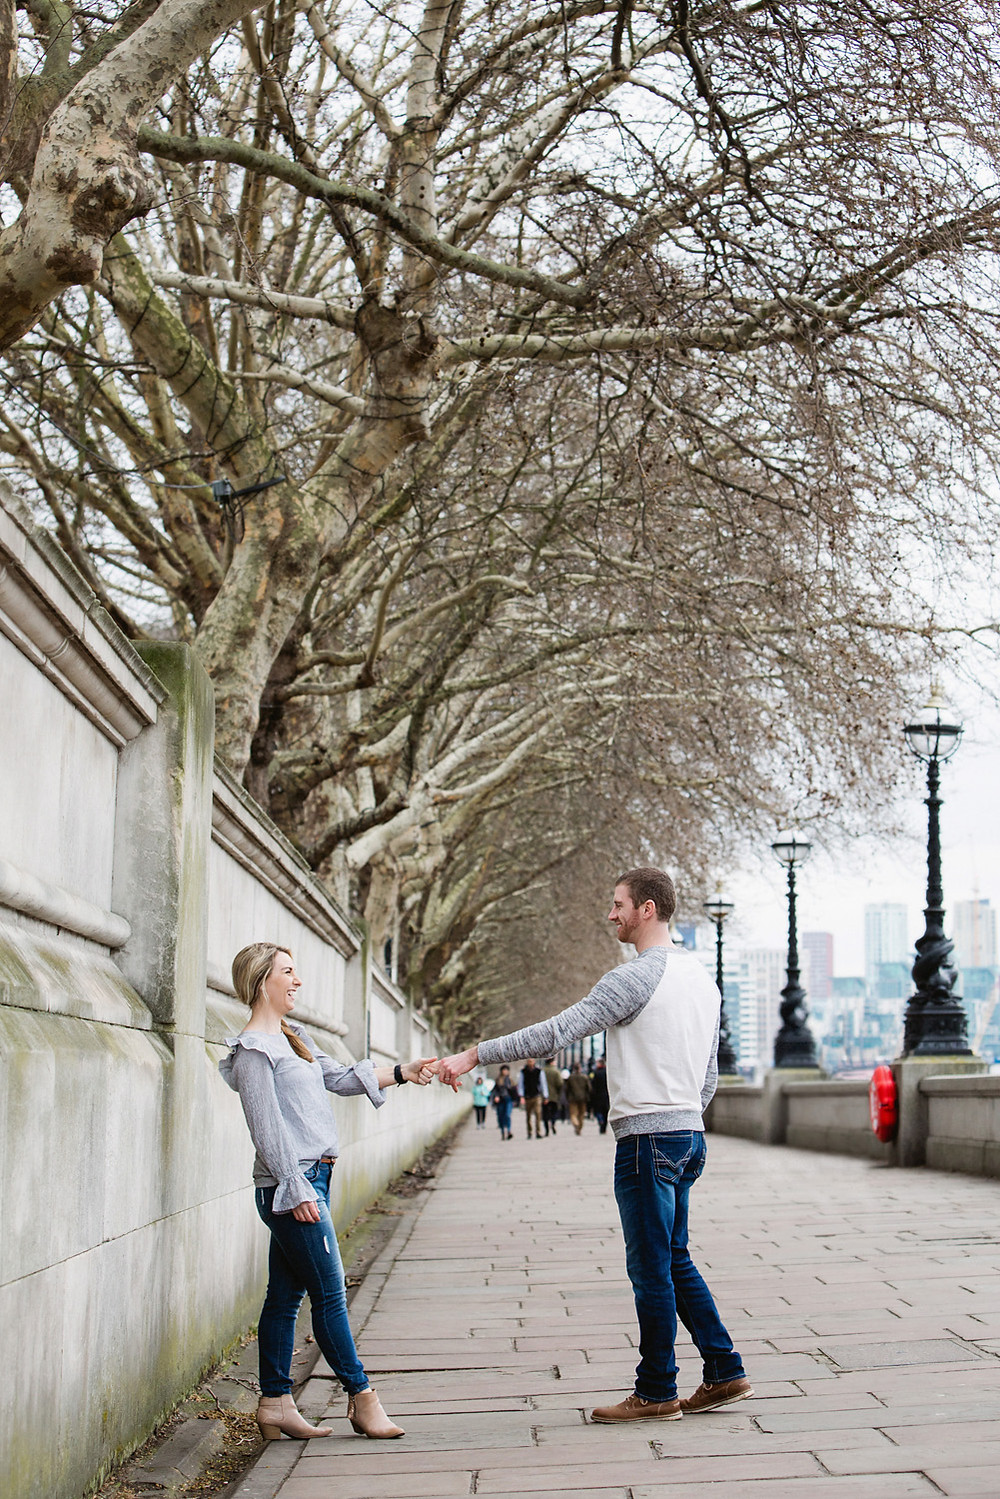 Lucy Williams Photography Photographs Couple on River Thames